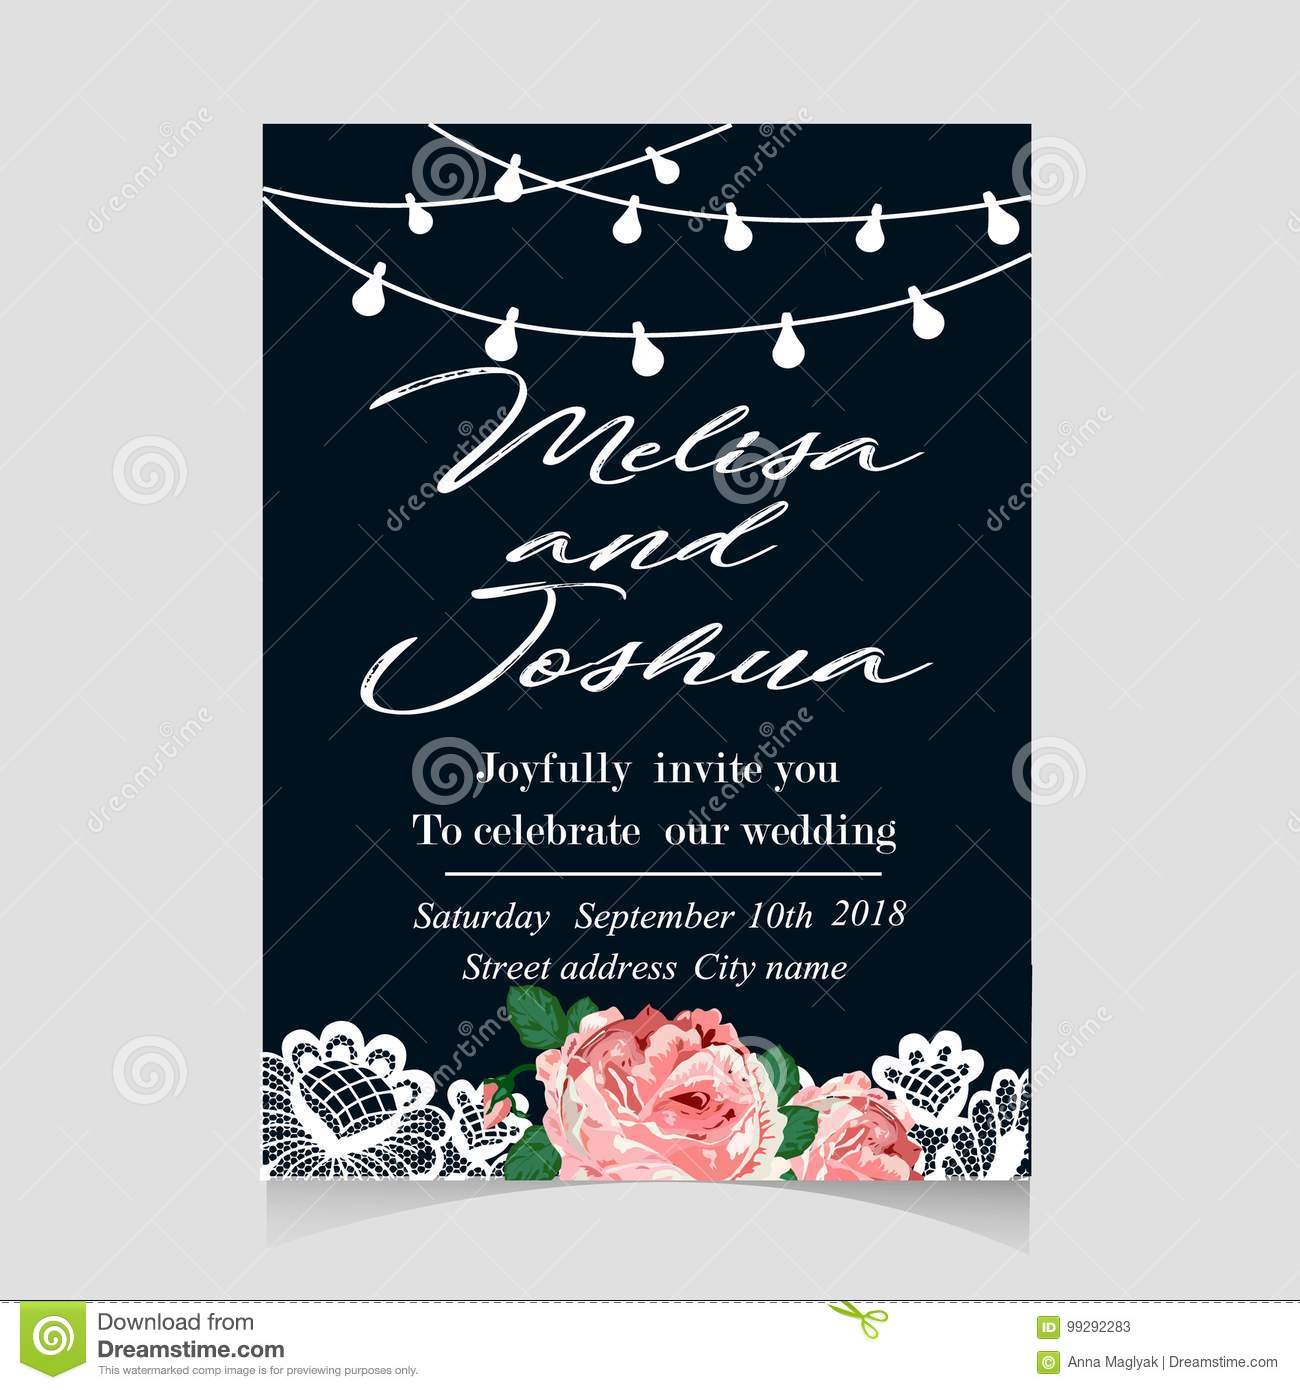 Save the date invitation card with holiday stock vector download save the date invitation card with holiday stock vector illustration of decoration light stopboris Images